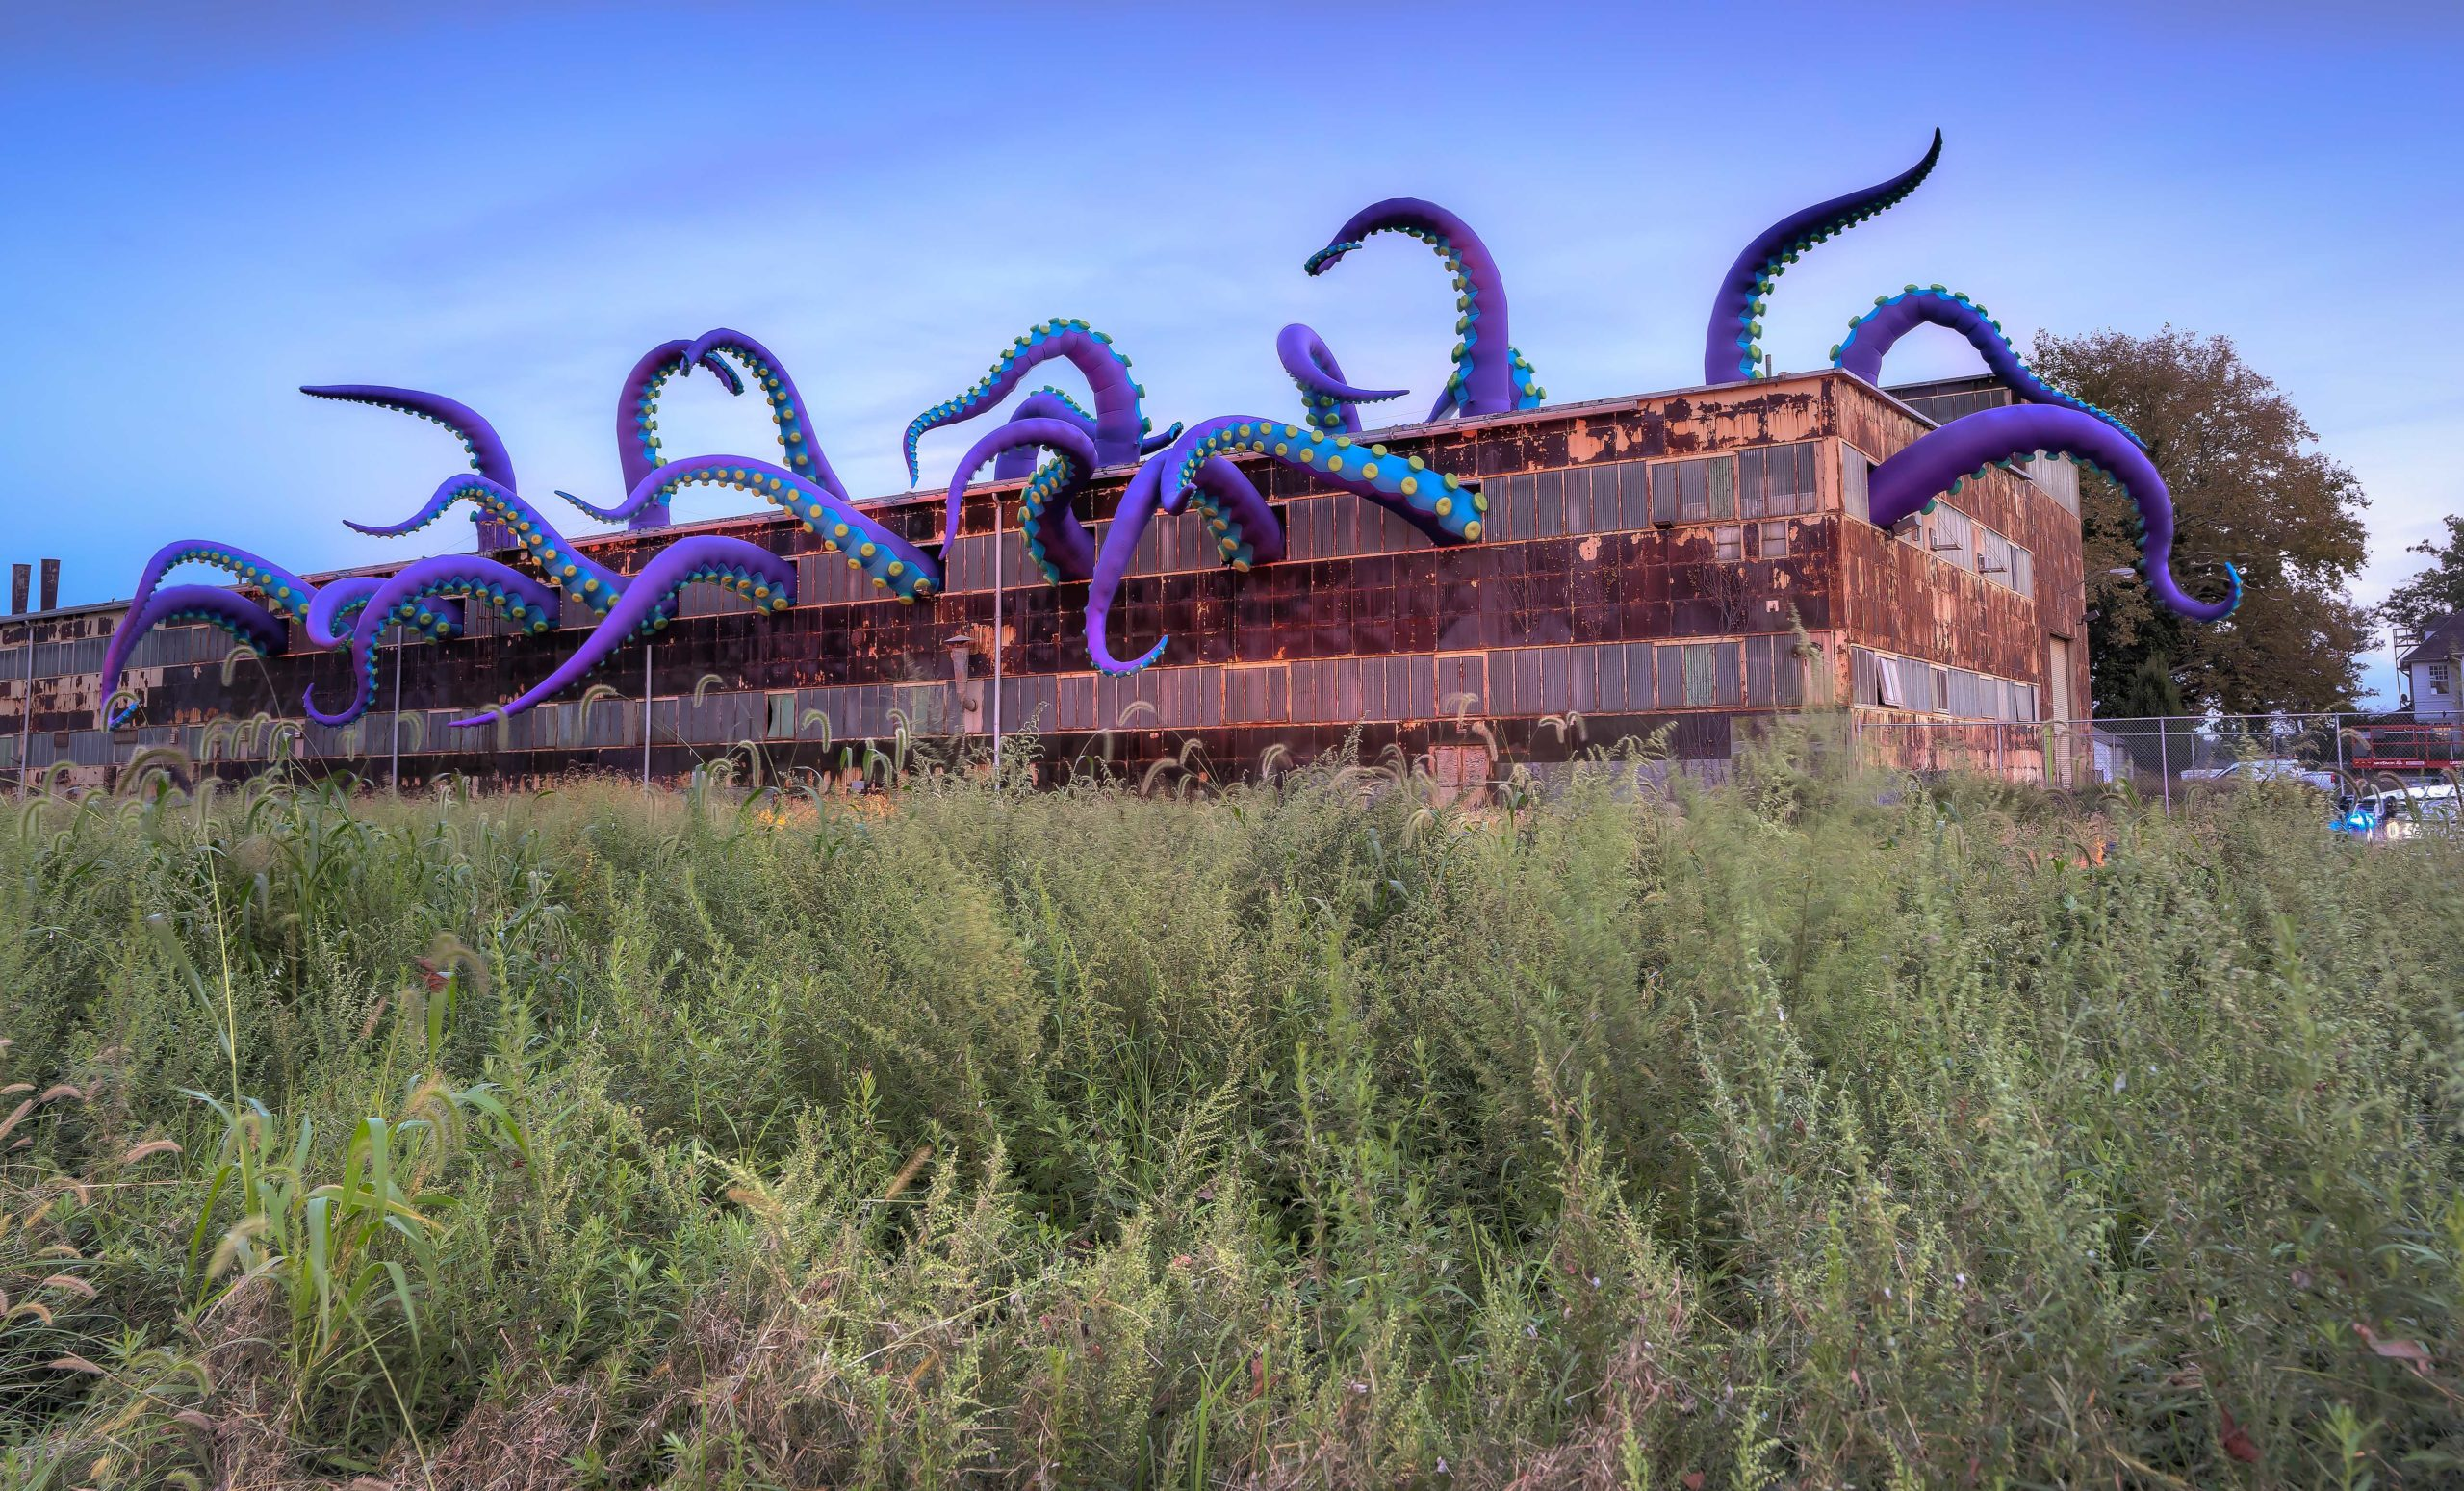 Giant tentacles sticking out of the Navy Yard in Philadelphia, created by Designs in Air